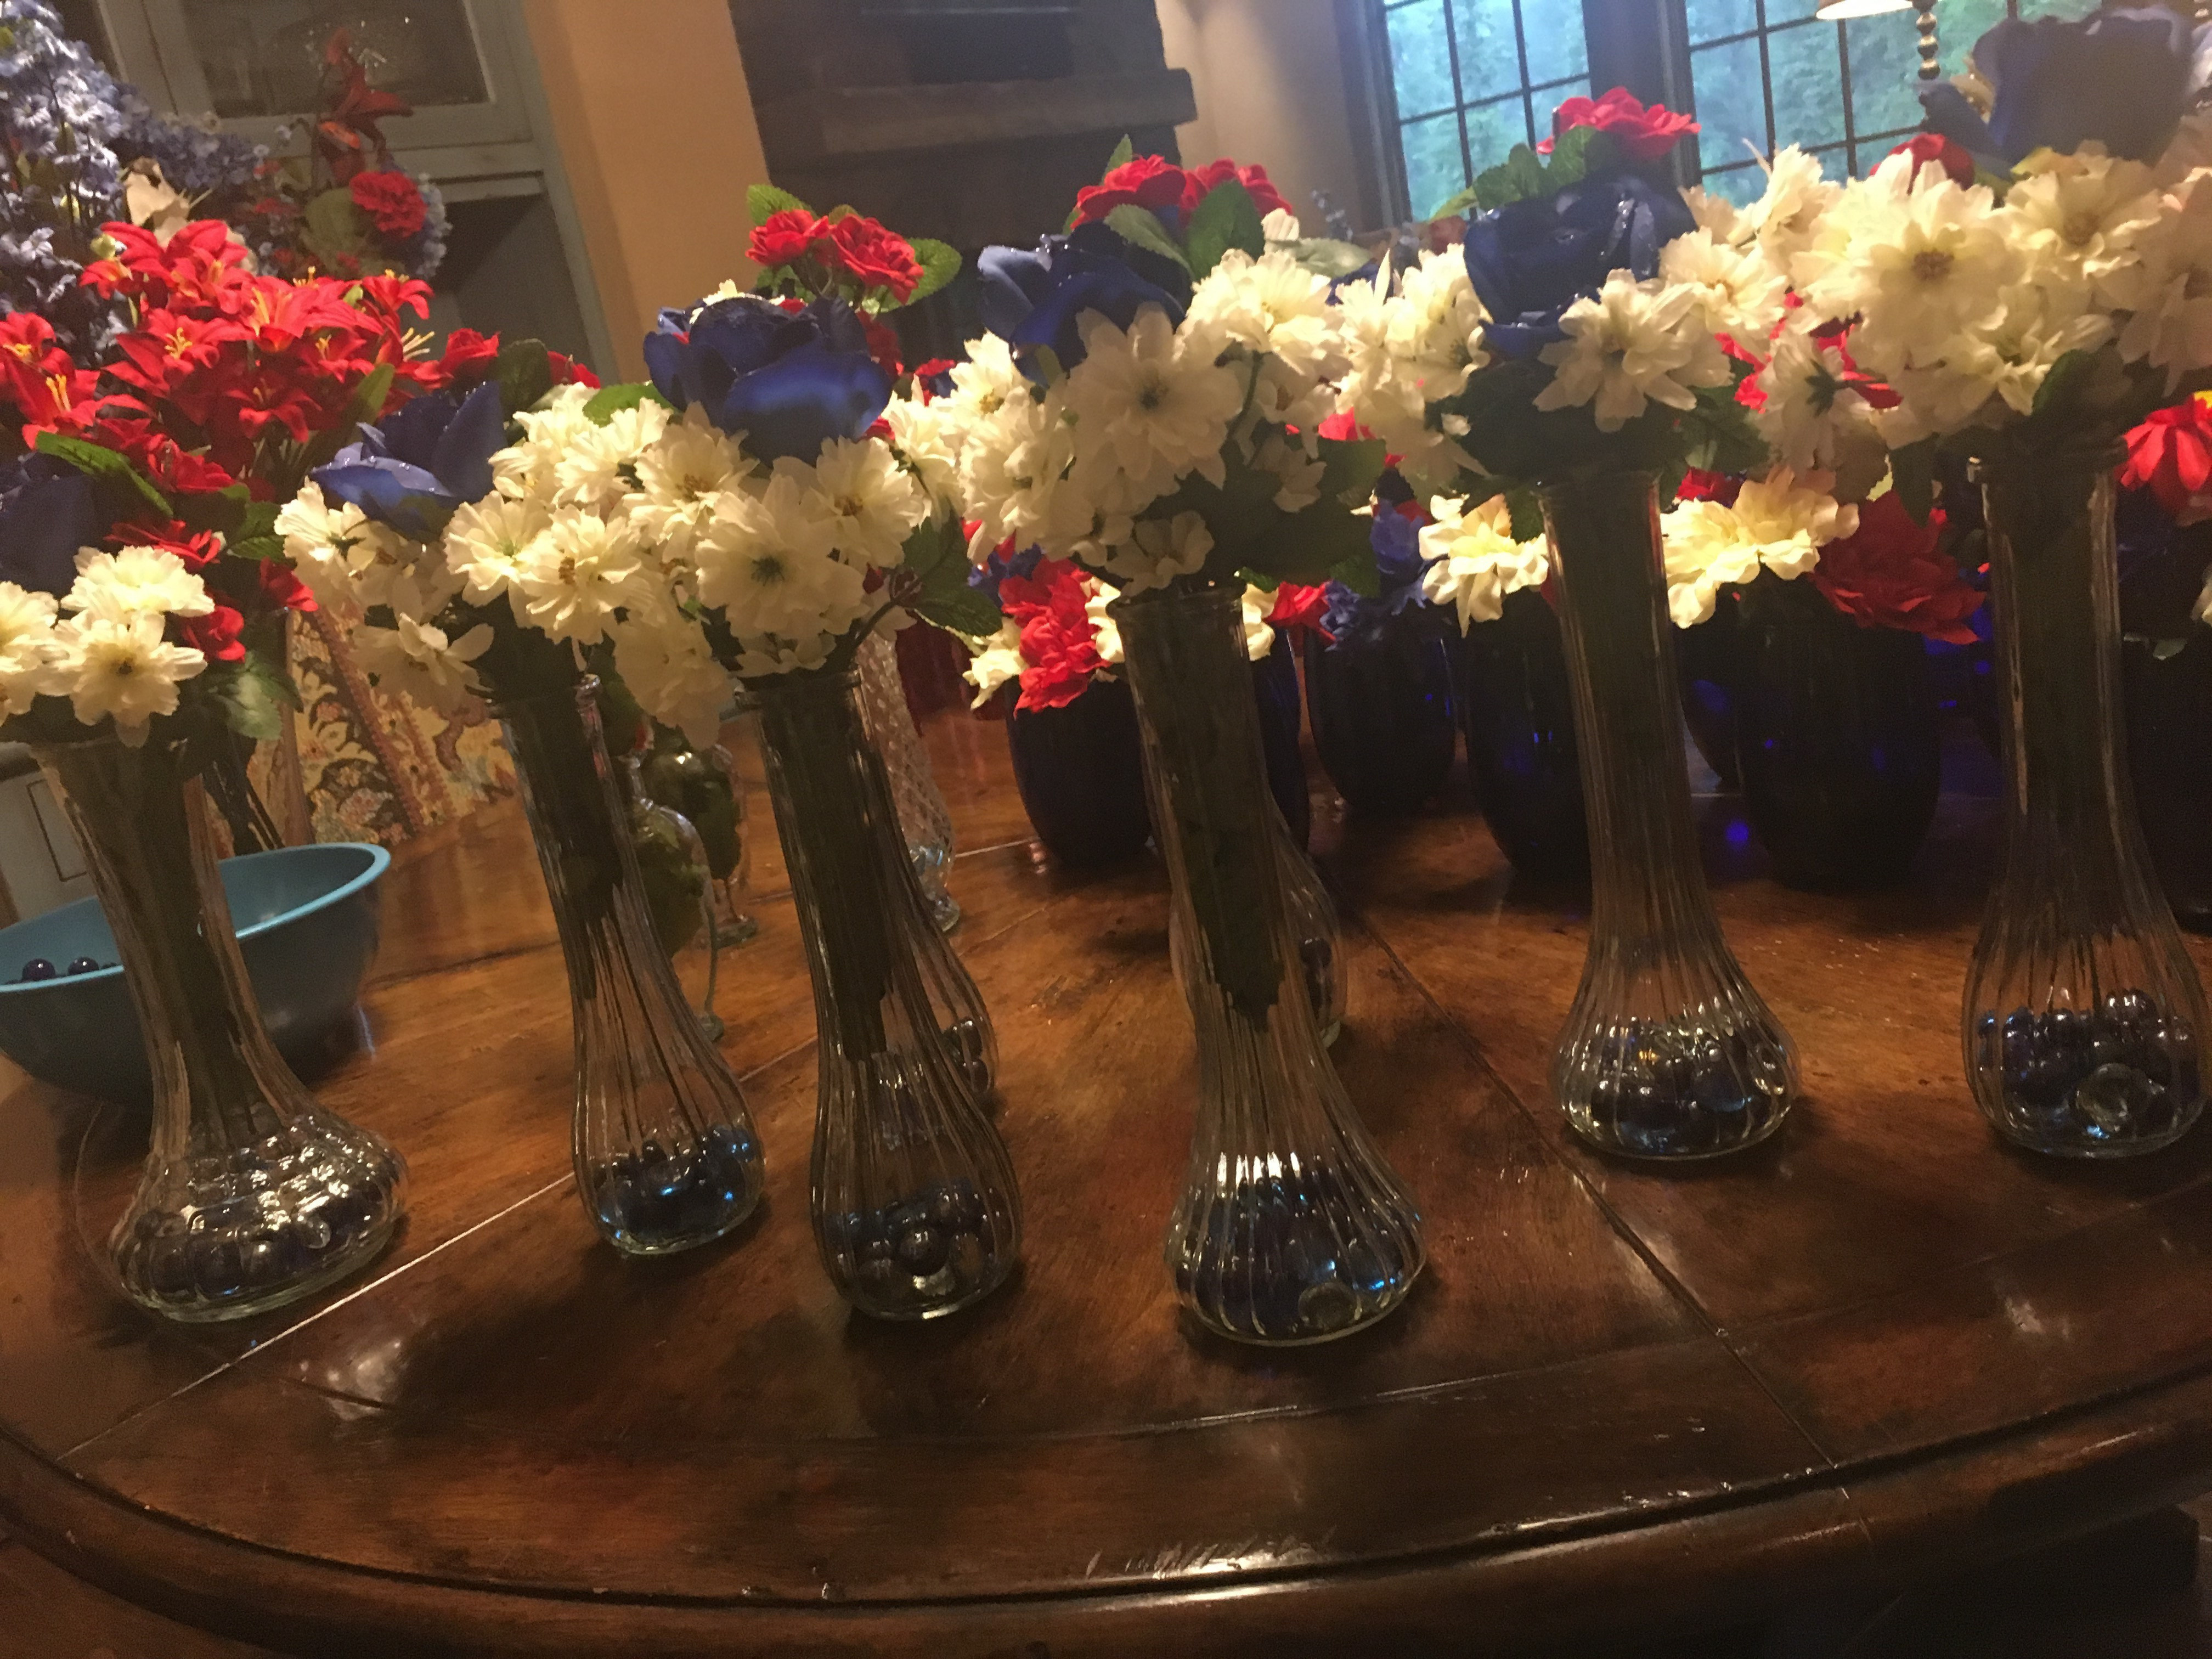 glass vase decorations centerpieces of dollar tree vases centerpieces image tall vase centerpiece ideas with regard to dollar tree vases centerpieces photos wedding decorations new dollar tree wedding decorations awesome h of dollar